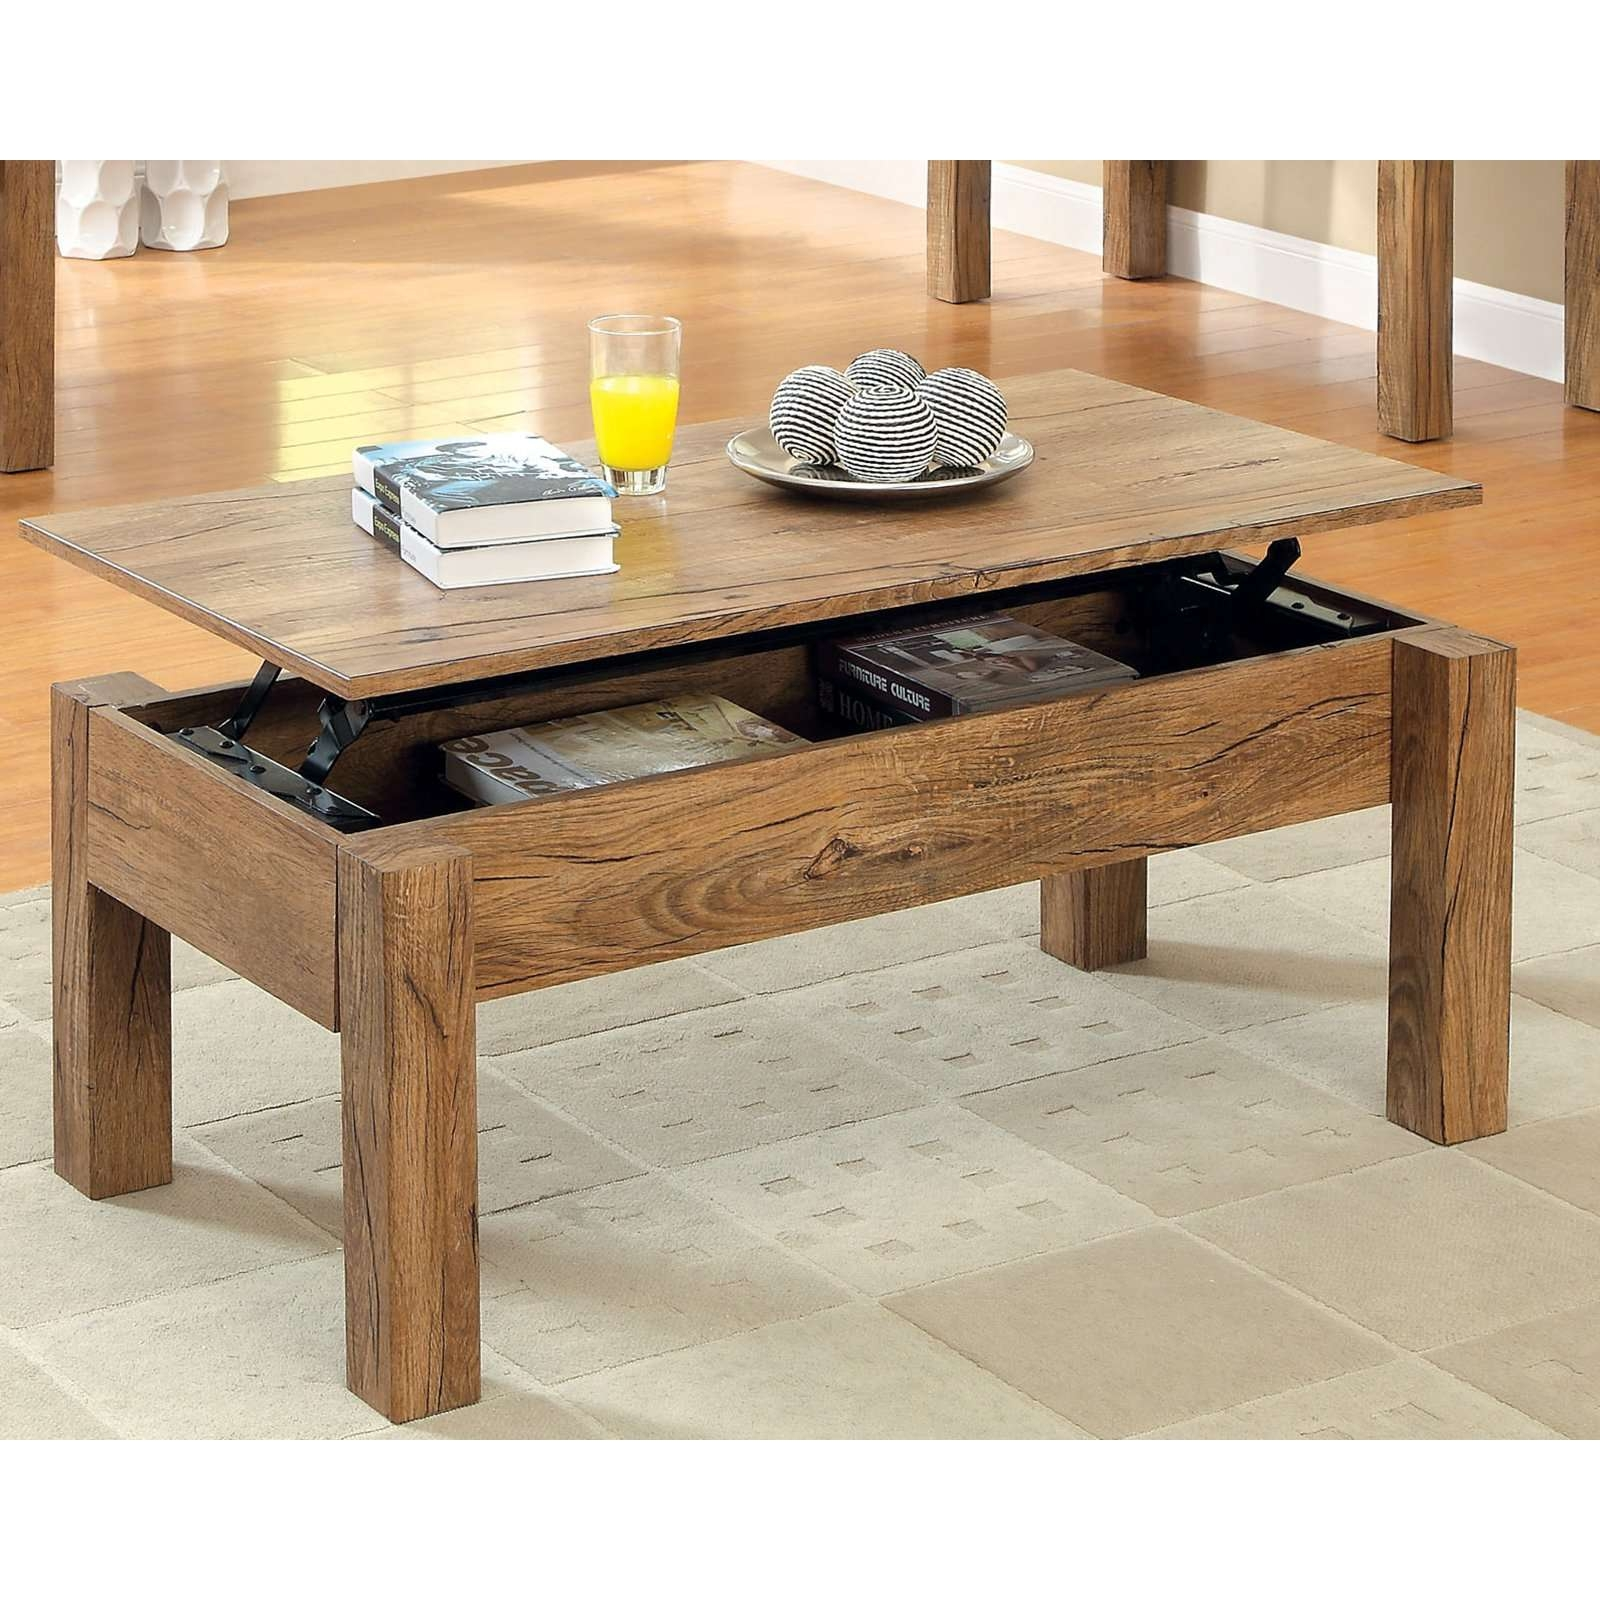 Newest Coffee Tables With Lift Top Storage For Coffee Tables : Simple Walnut Coffee Table Lift Top With Stools (Gallery 12 of 20)